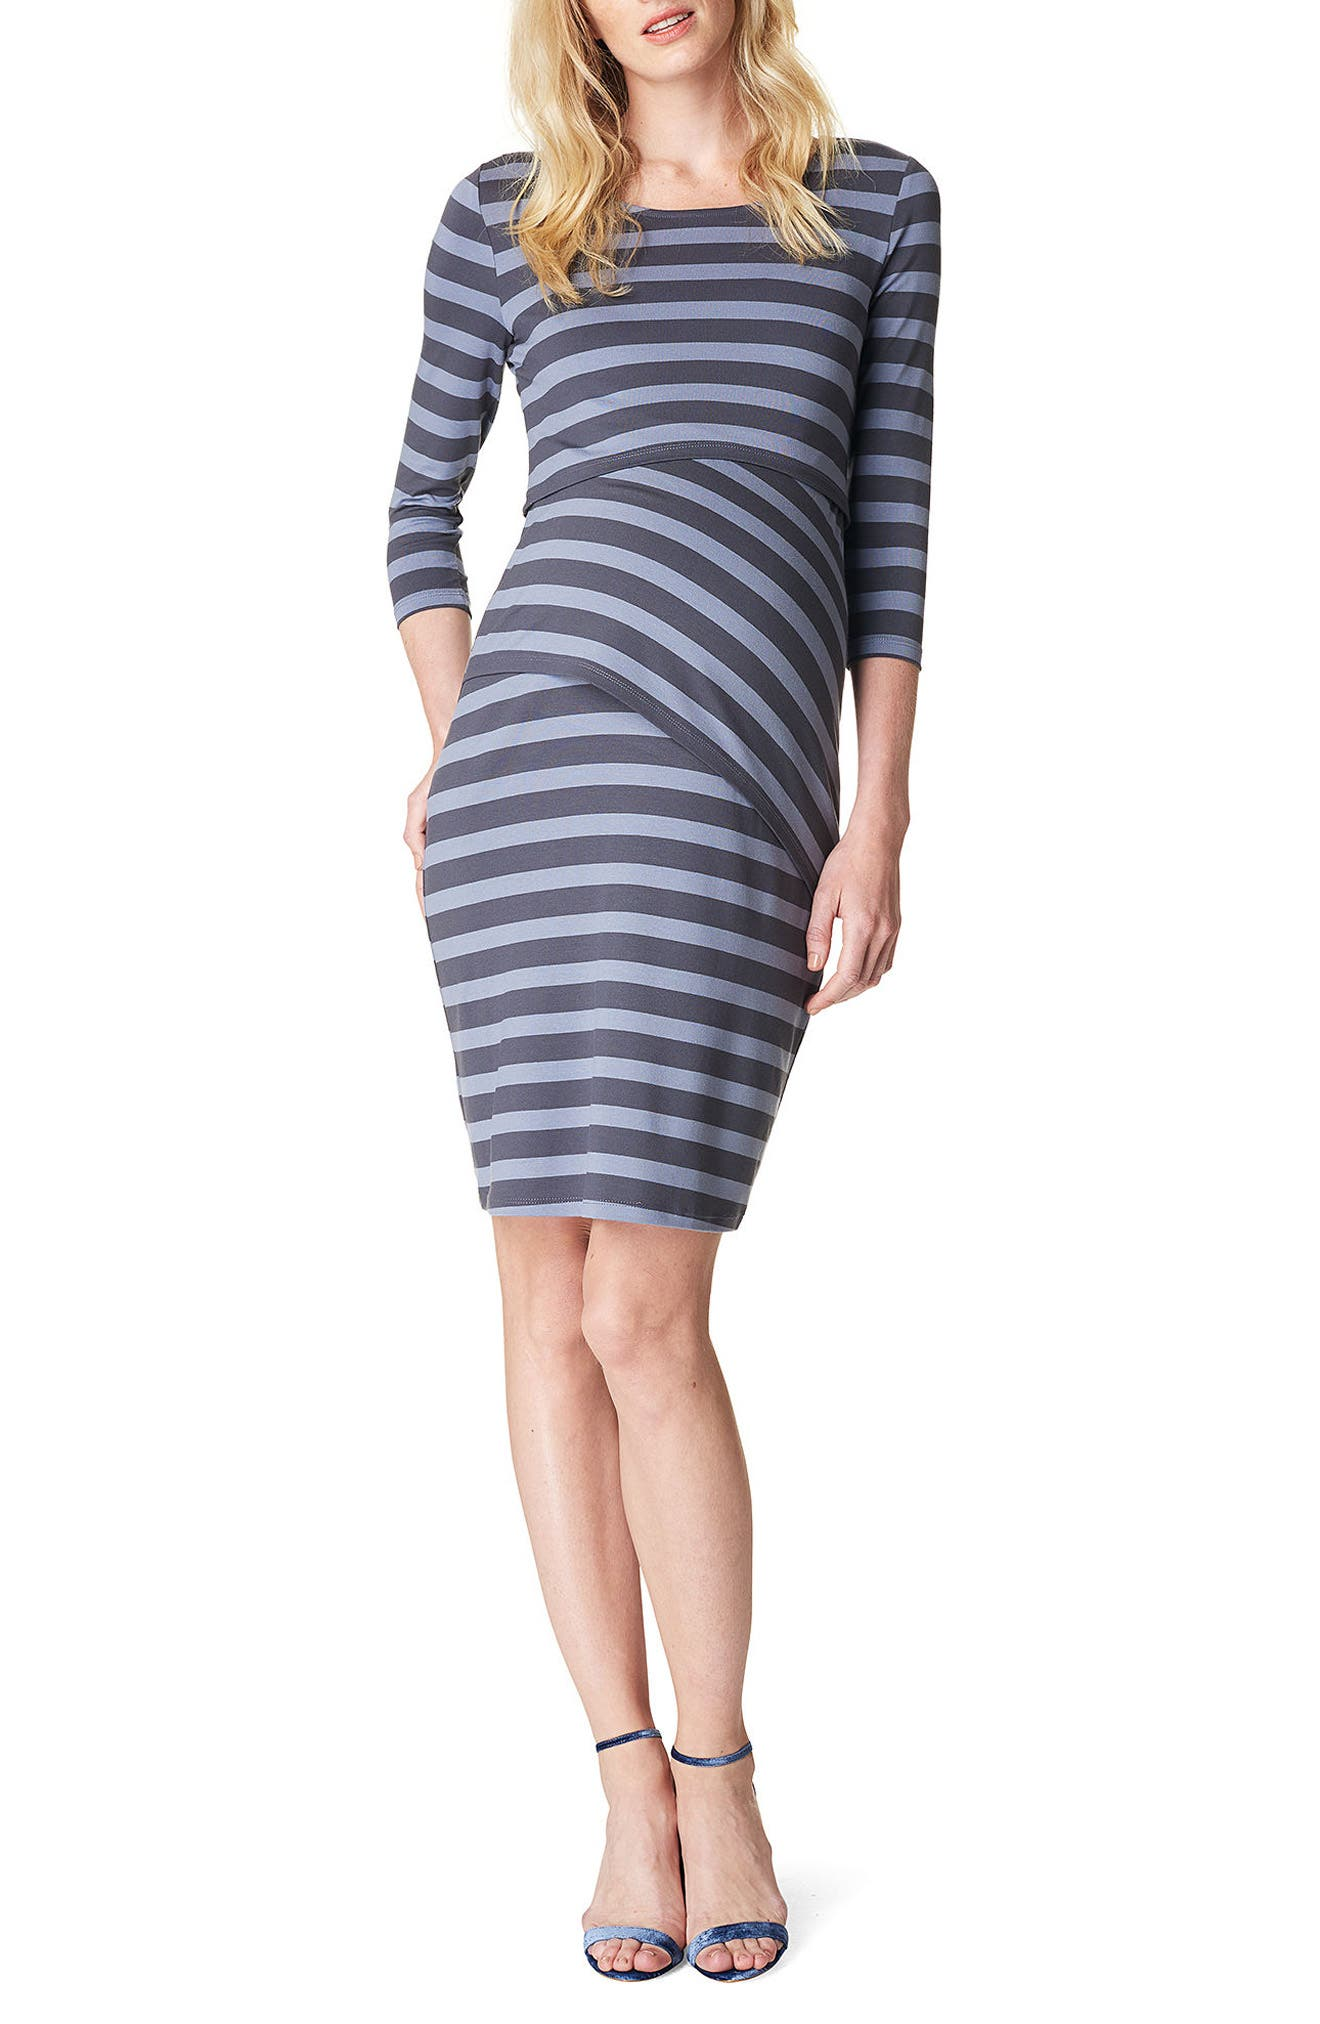 Aaike Maternity/Nursing Sheath Dress,                             Main thumbnail 1, color,                             Blue Strip